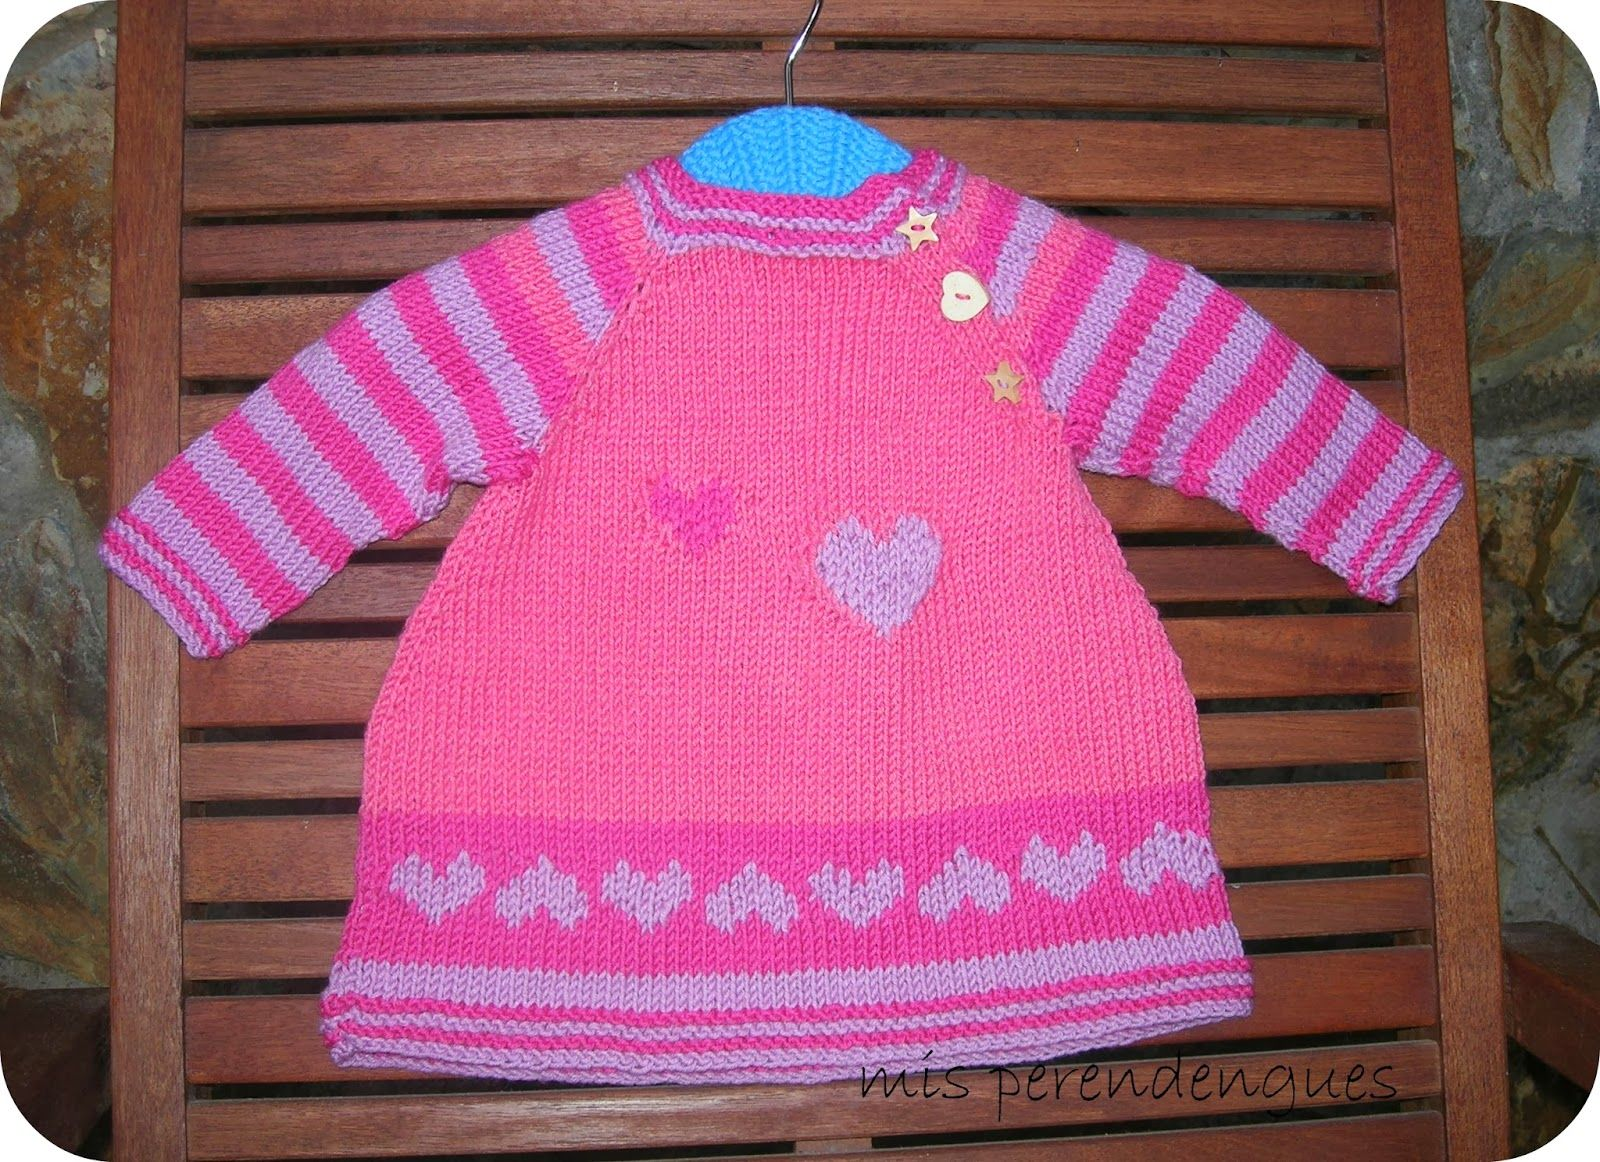 Mis perendengues: A baby dress